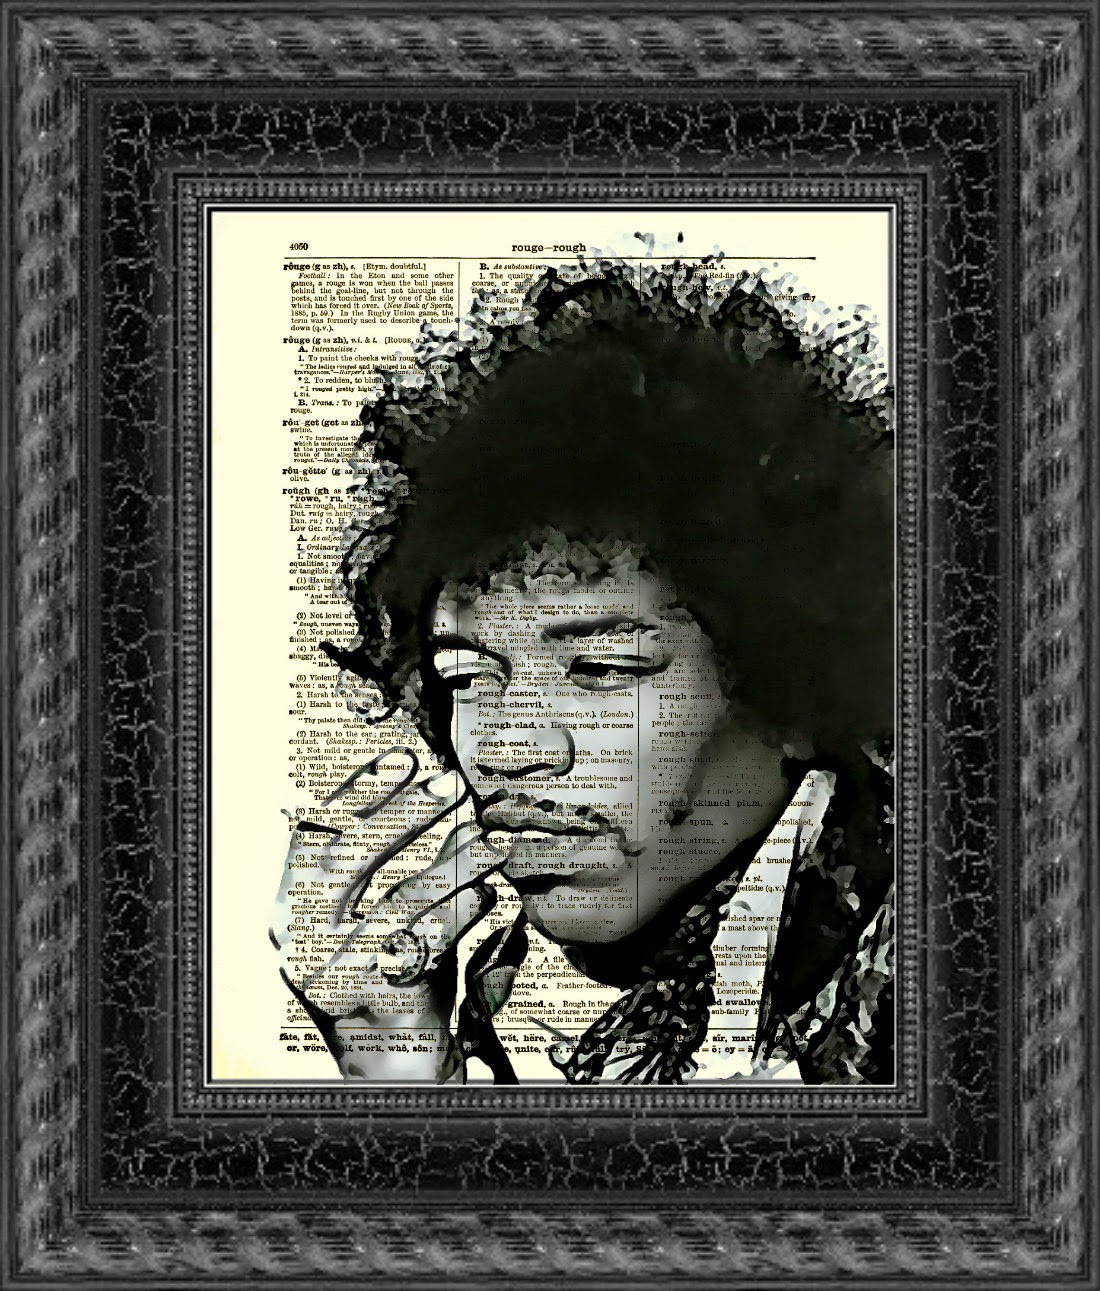 11-Jimi-Hendrix-Belle-Old-Books-and-Dictionaries-in-Re-Imagination-Prints-www-designstack-co